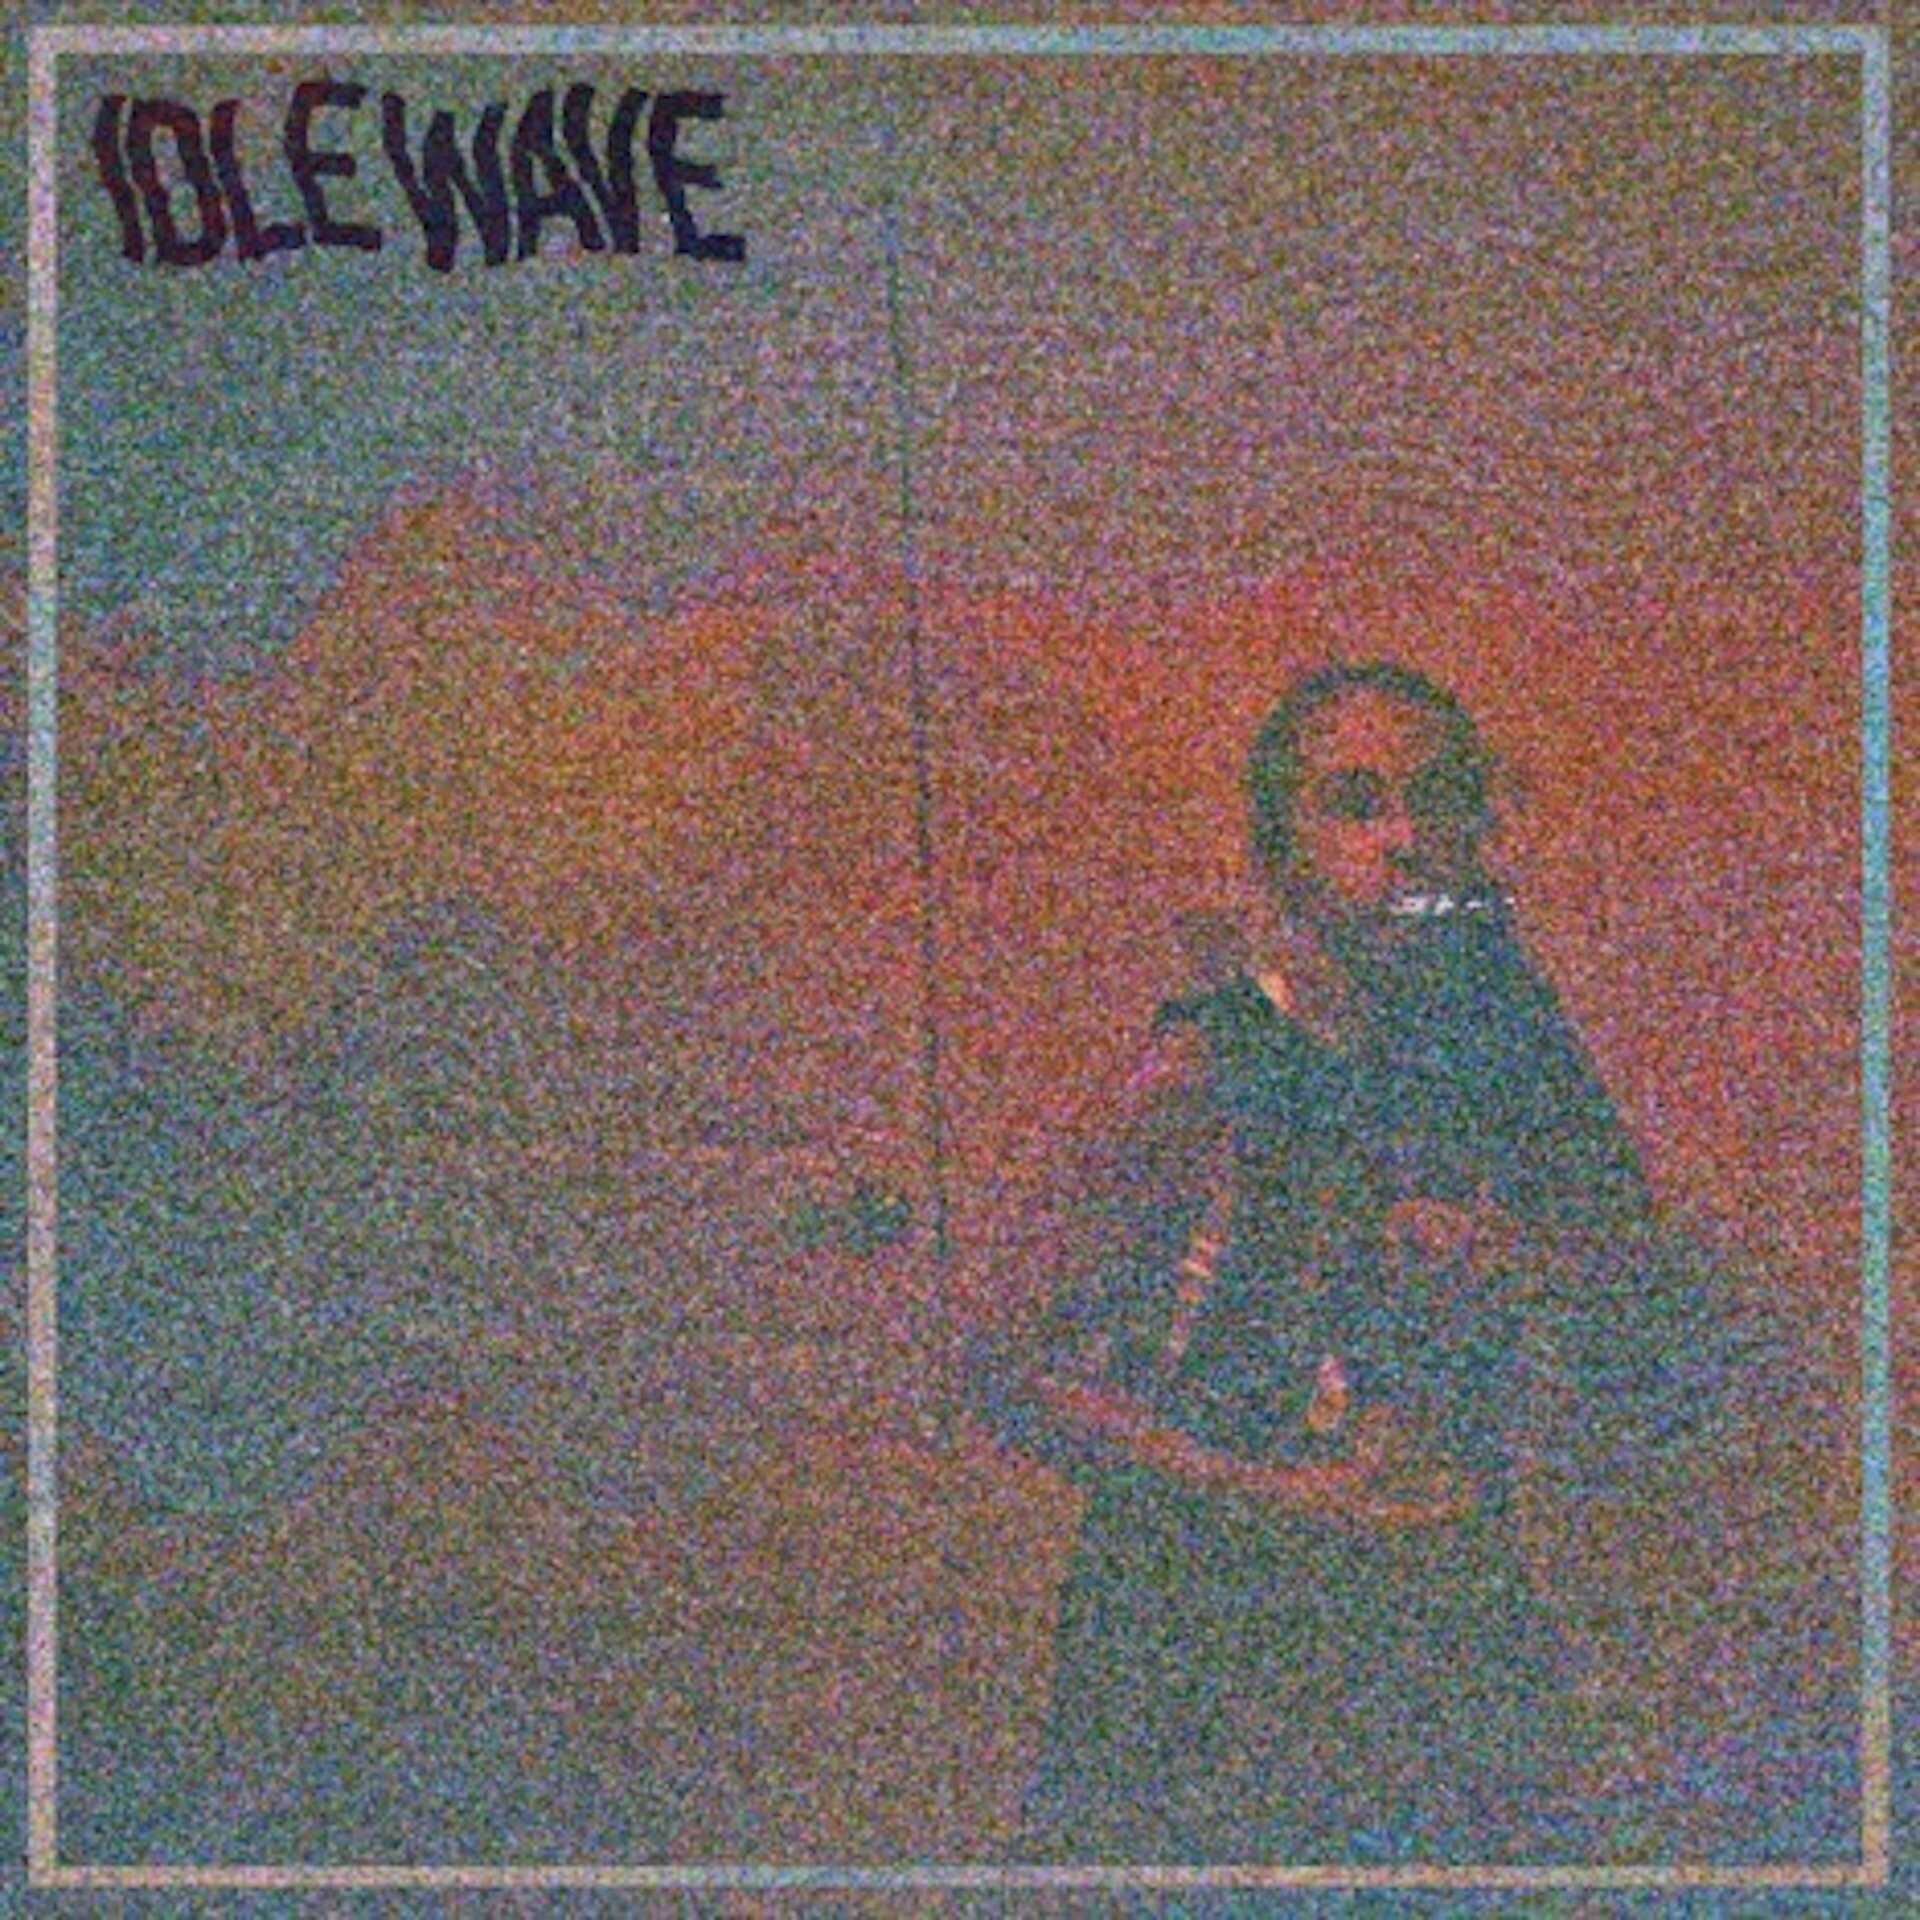 Idle Wave album cover.jpg